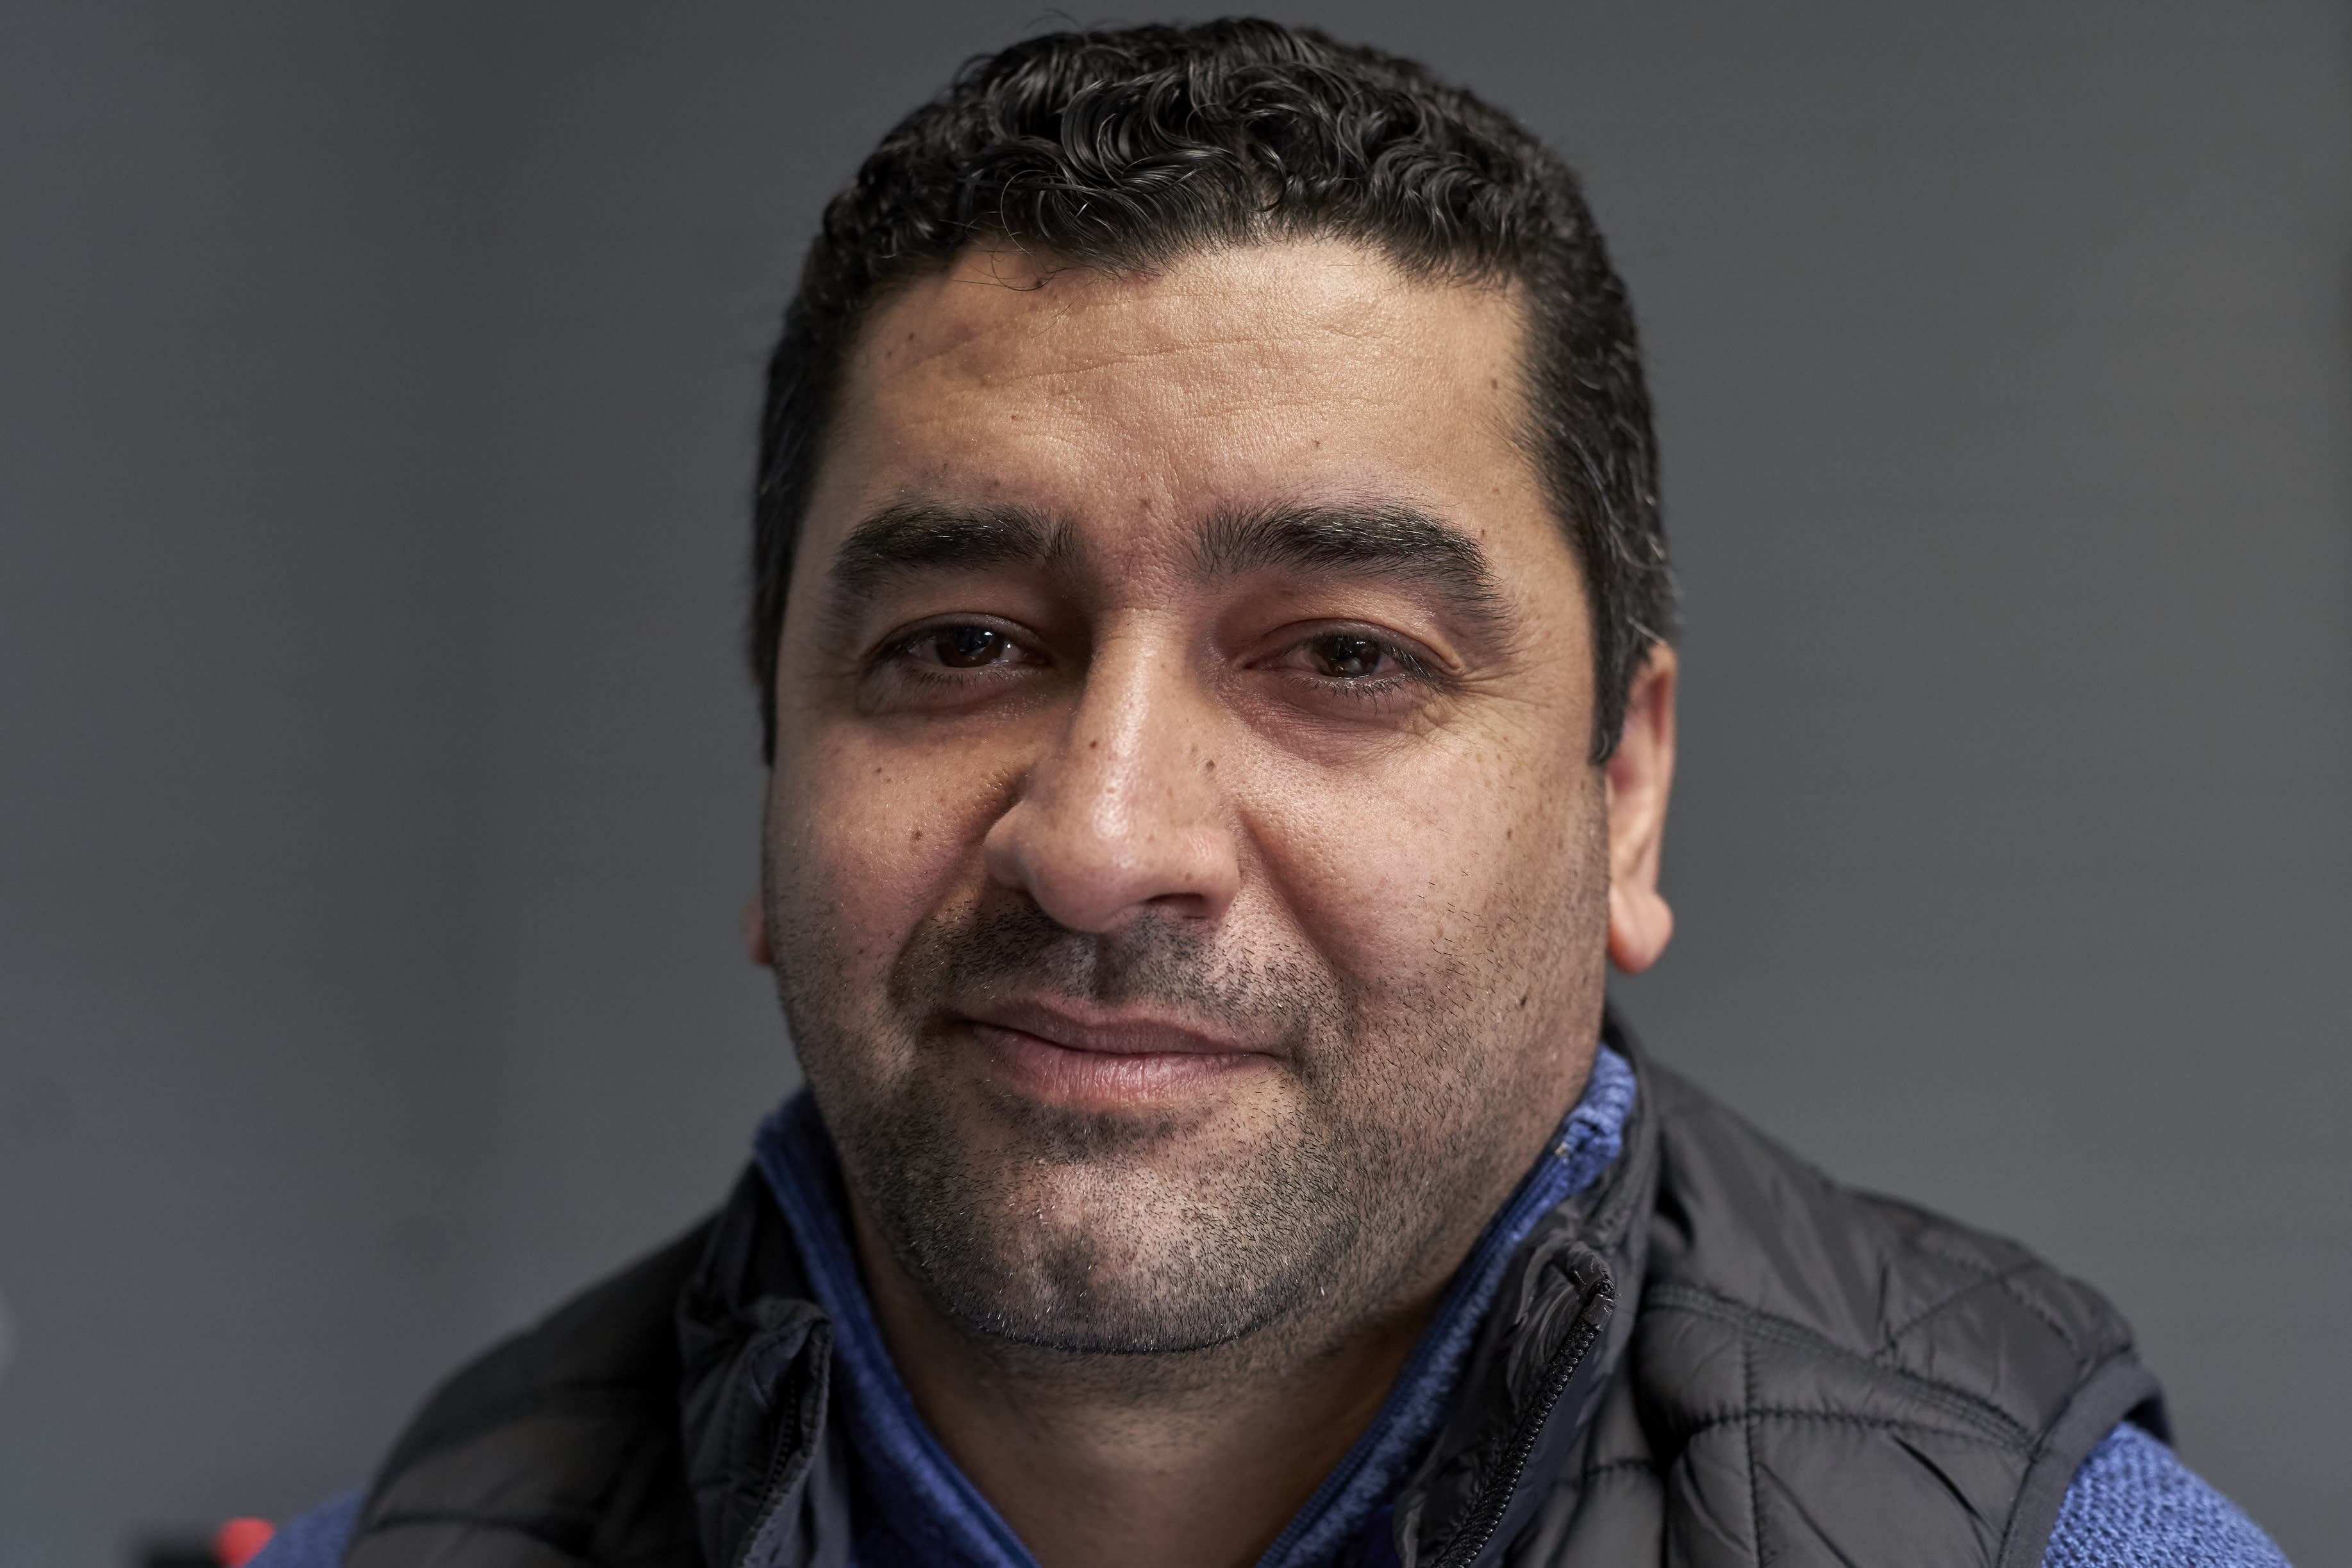 In this Dec. 19, 2019 photo, Hatim Ido poses for a photo in Lincoln, Neb., following an interview with the Associated Press. Neb. Gov. Pete Ricketts announced he would continue to allow refugees to settle in Nebraska, and in an open letter praised President Trump for adding new security layers to the vetting process. The uncertainty prior to that announcement was a major worry for Hatim Ido, a graduate student in Lincoln, Neb., who fled from Iraq to the United States after working as a translator for the U.S. Army. AP Photo/Nati Harnik)